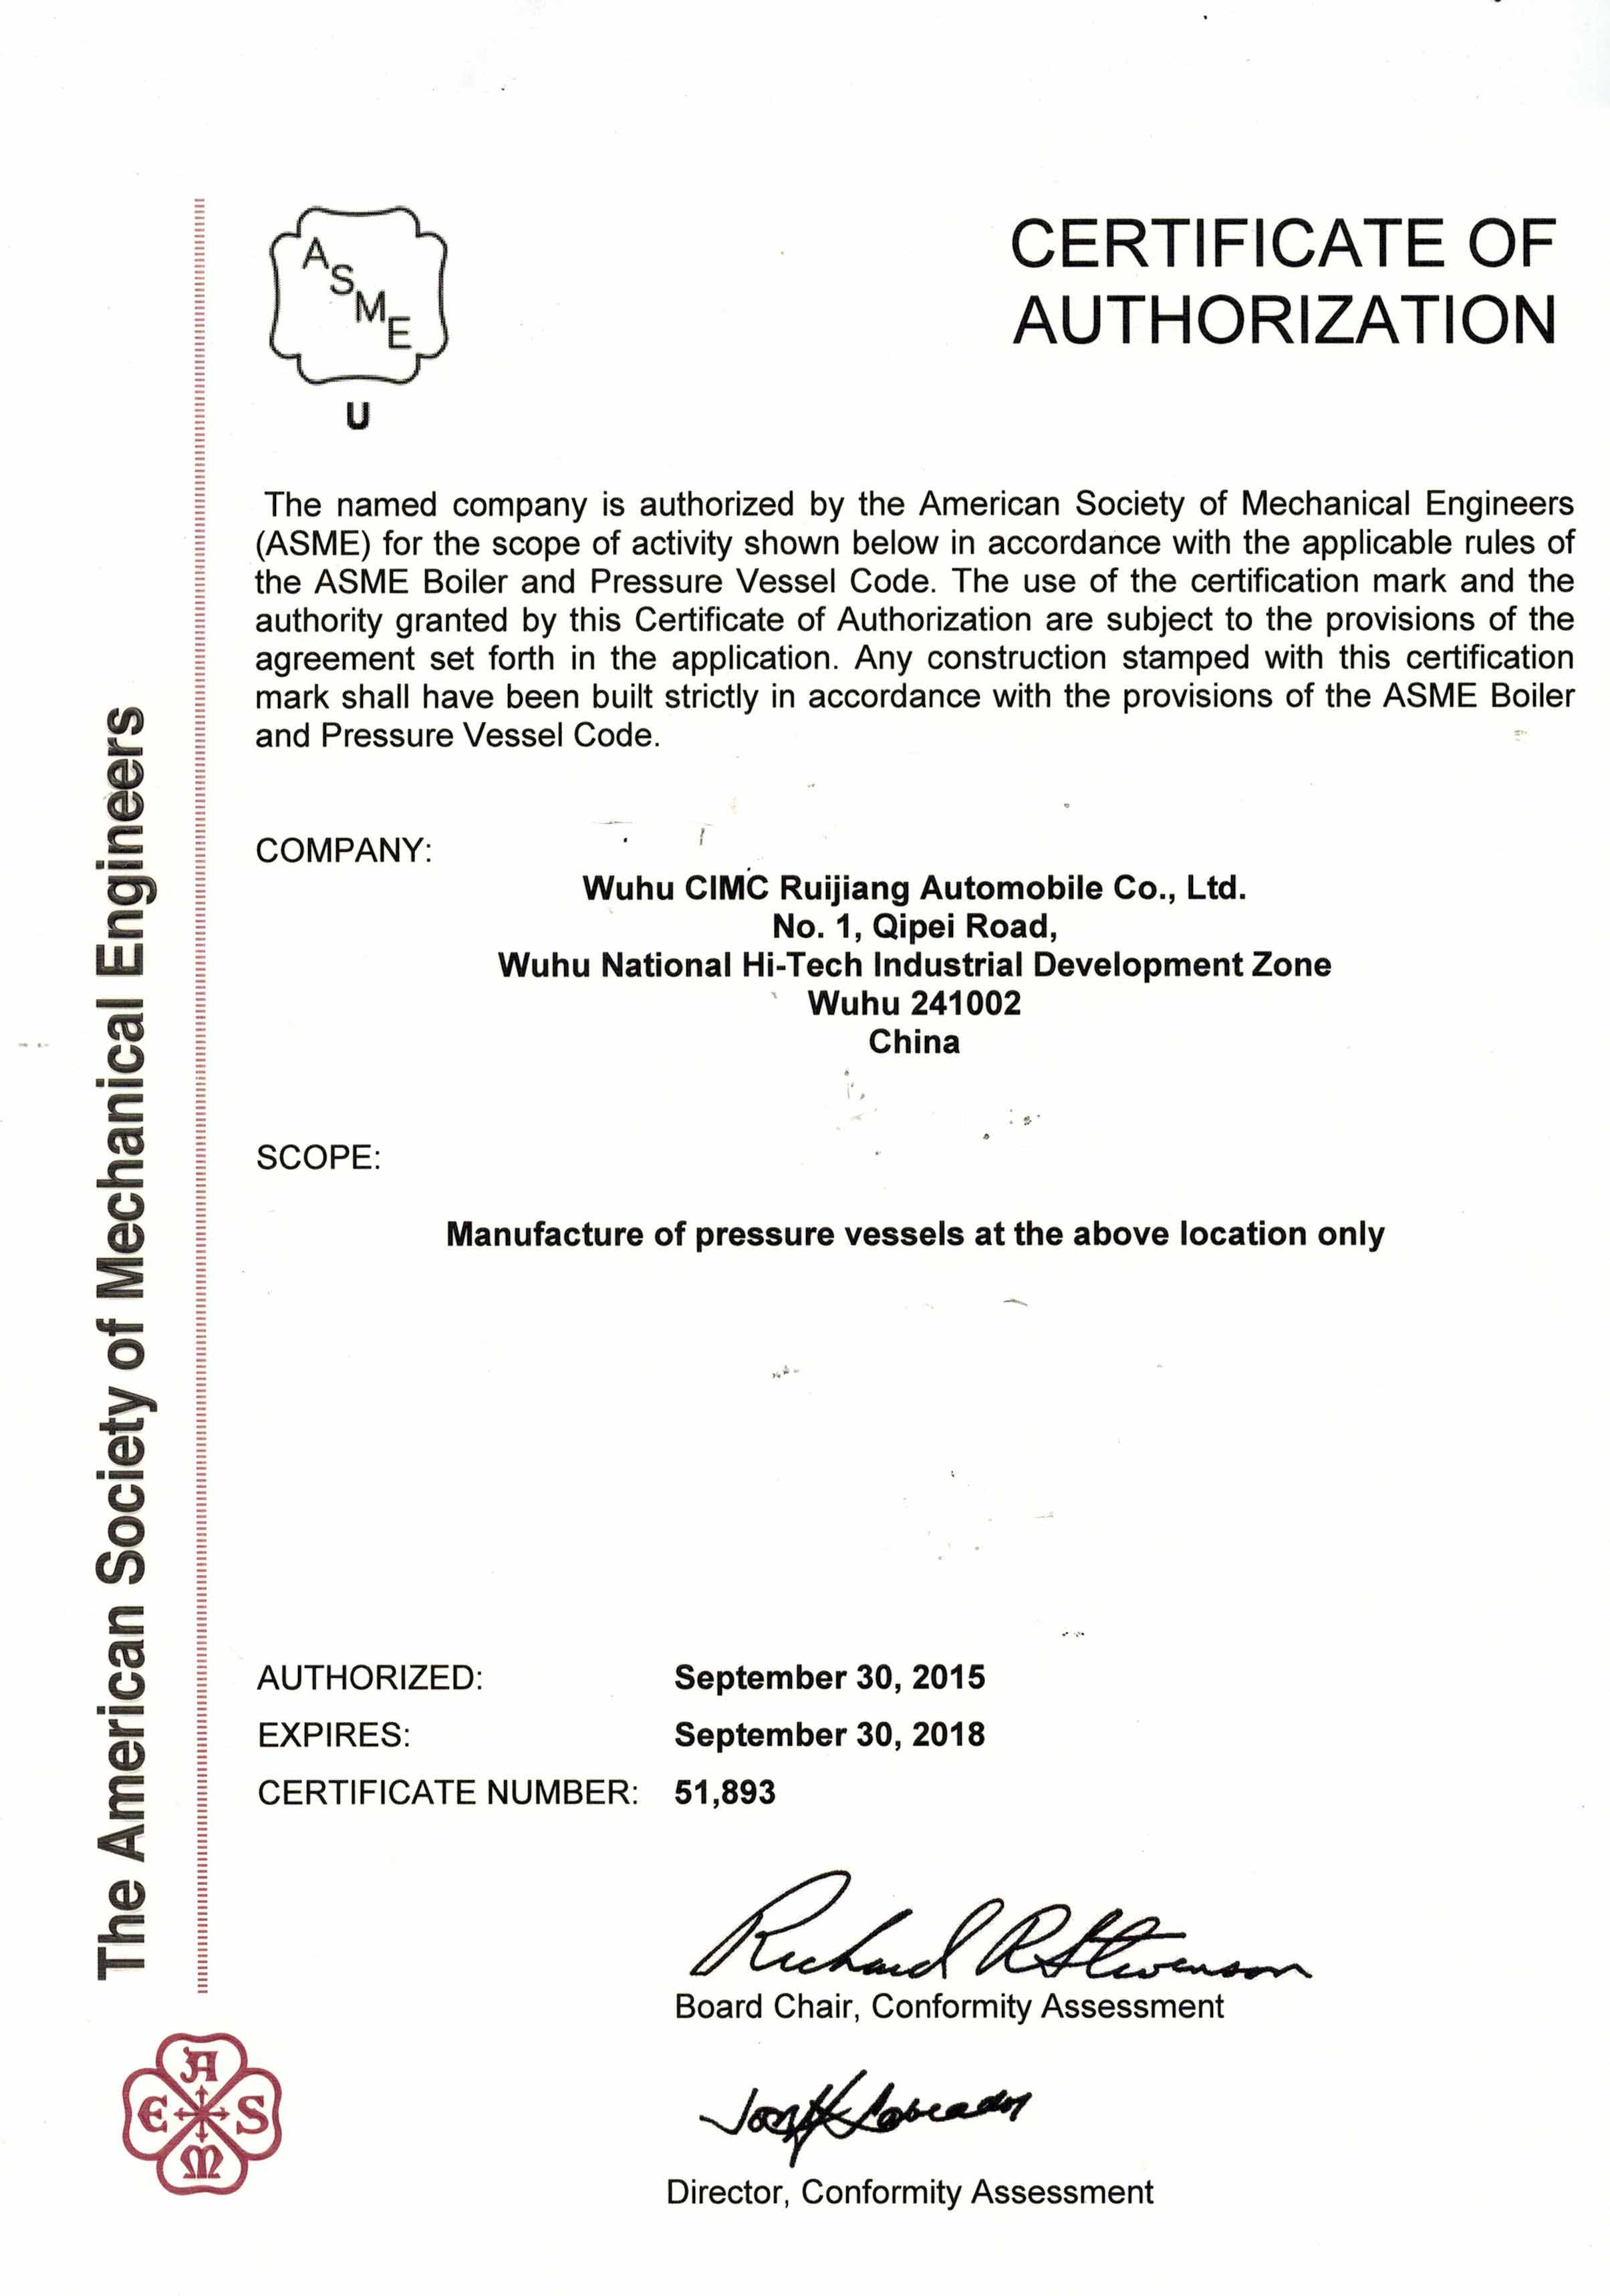 CIMC Ruijiang Accepted ASME Authorization Certificate!